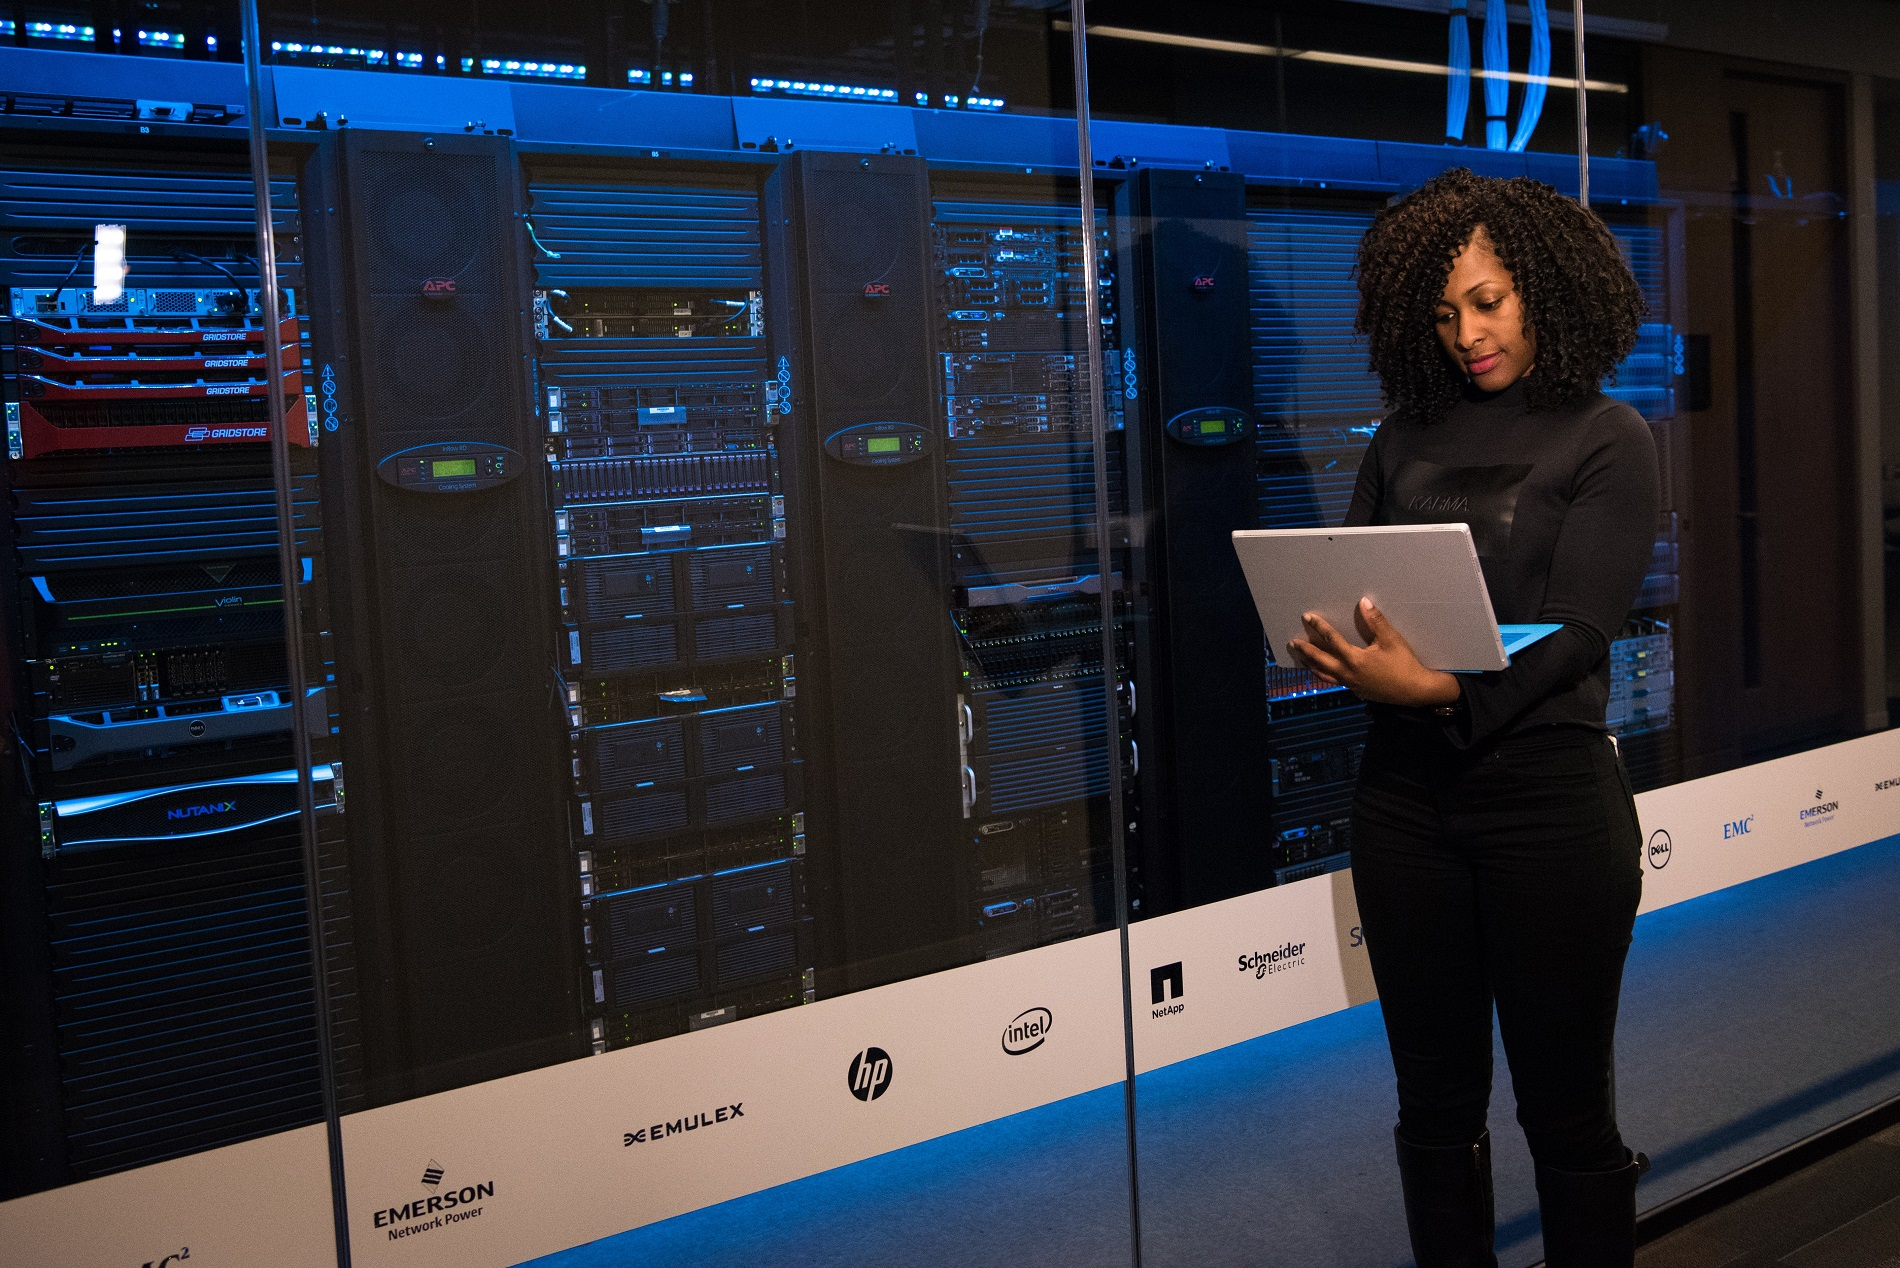 Why Data Centers Are the Hidden Real Estate Boom | Ken McElroy Image